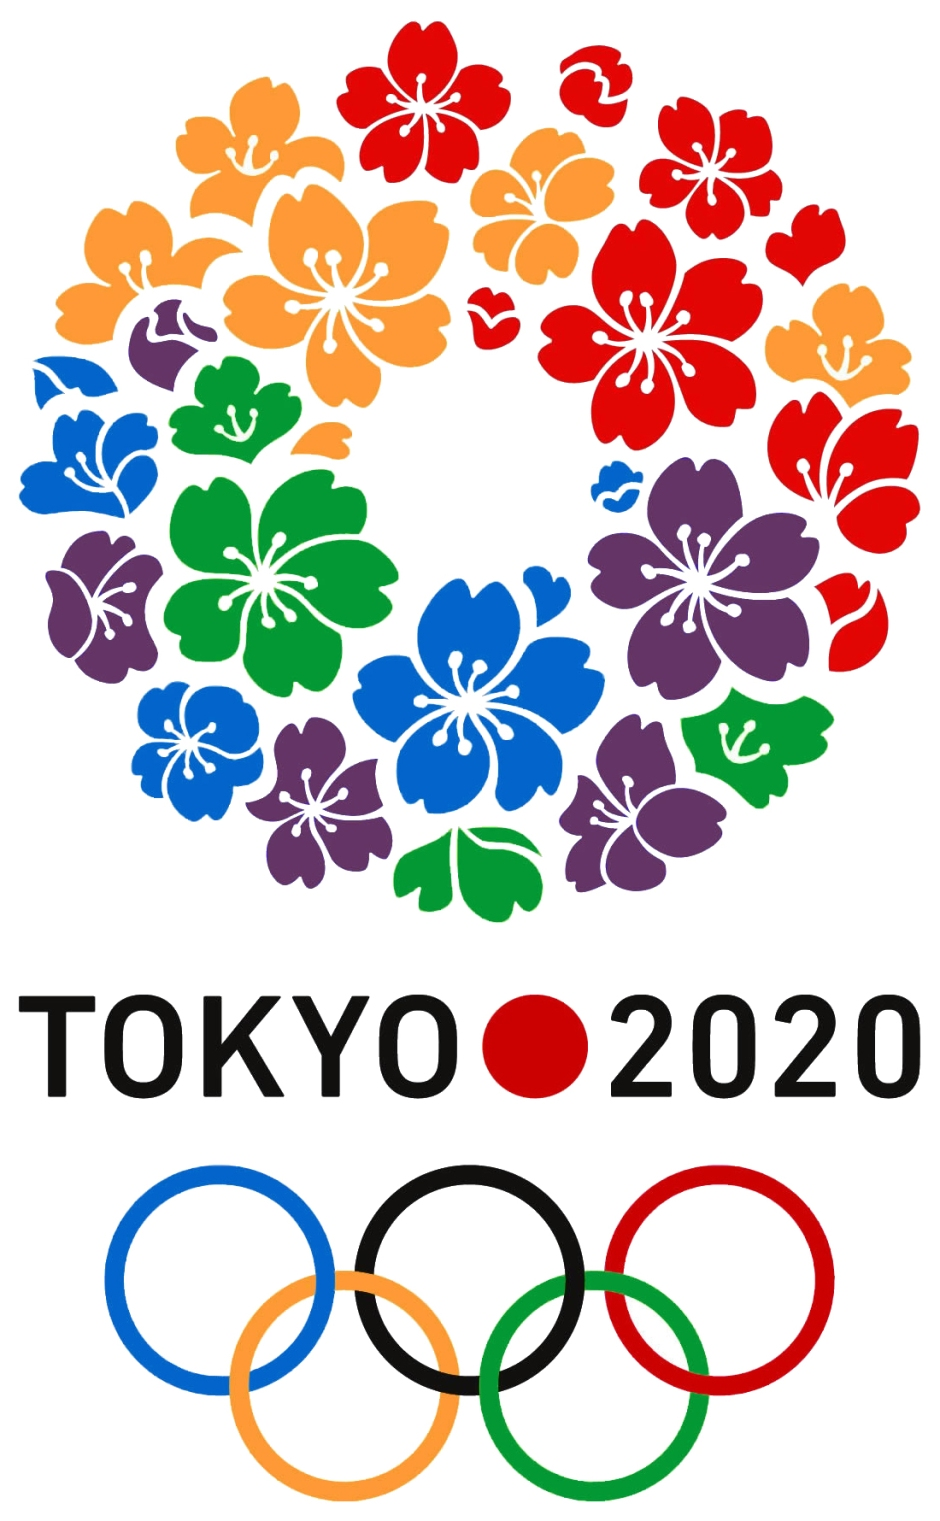 The Olympic emblem for the 2020 bid.